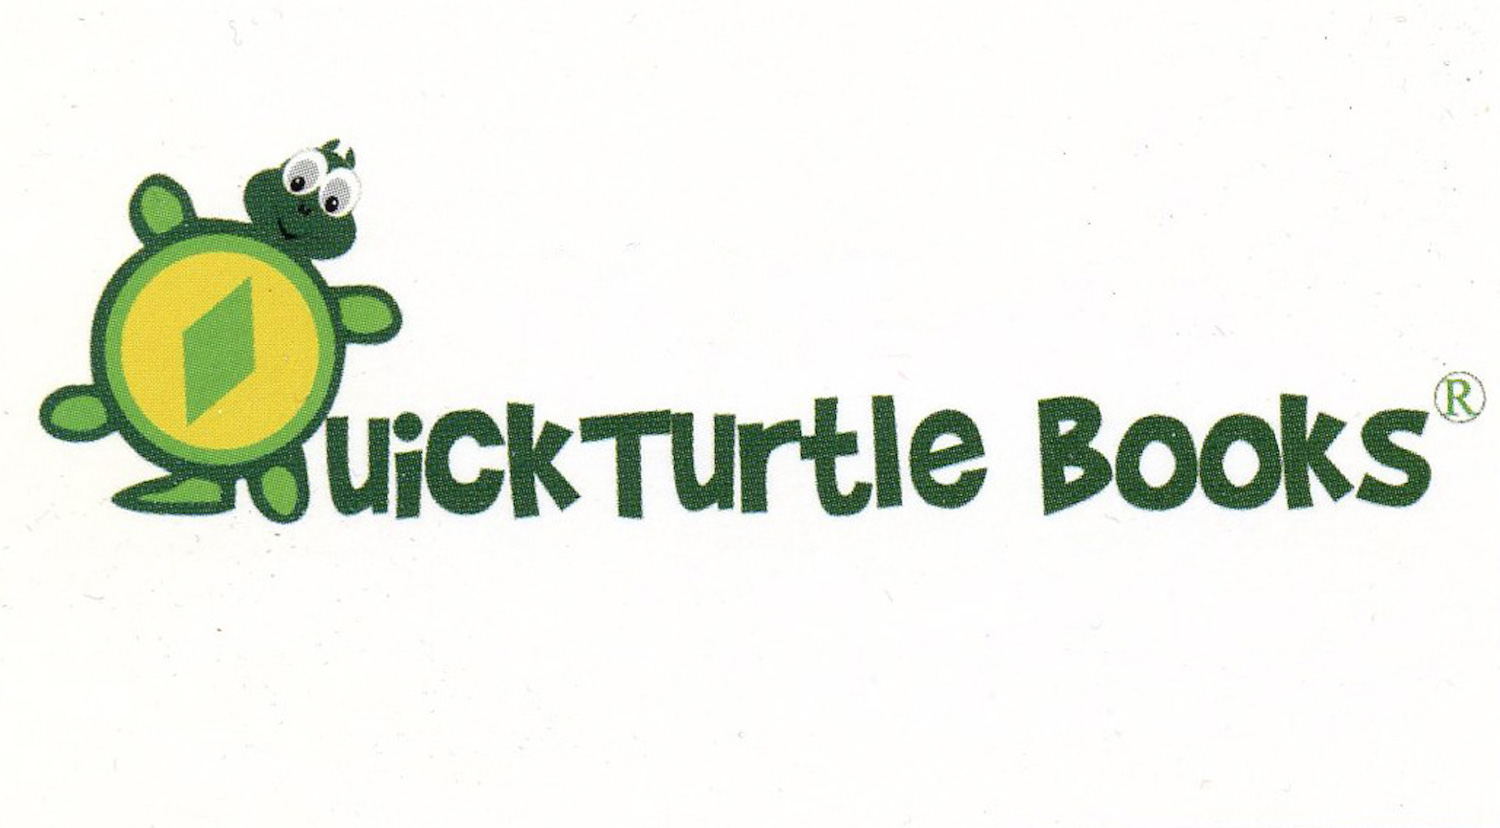 QuickTurtle books logo.  QuickTurtle Books is the publisher of all Books Make Booms custom books by Michigan authors Richard Rensberry and Mary Rensberry.